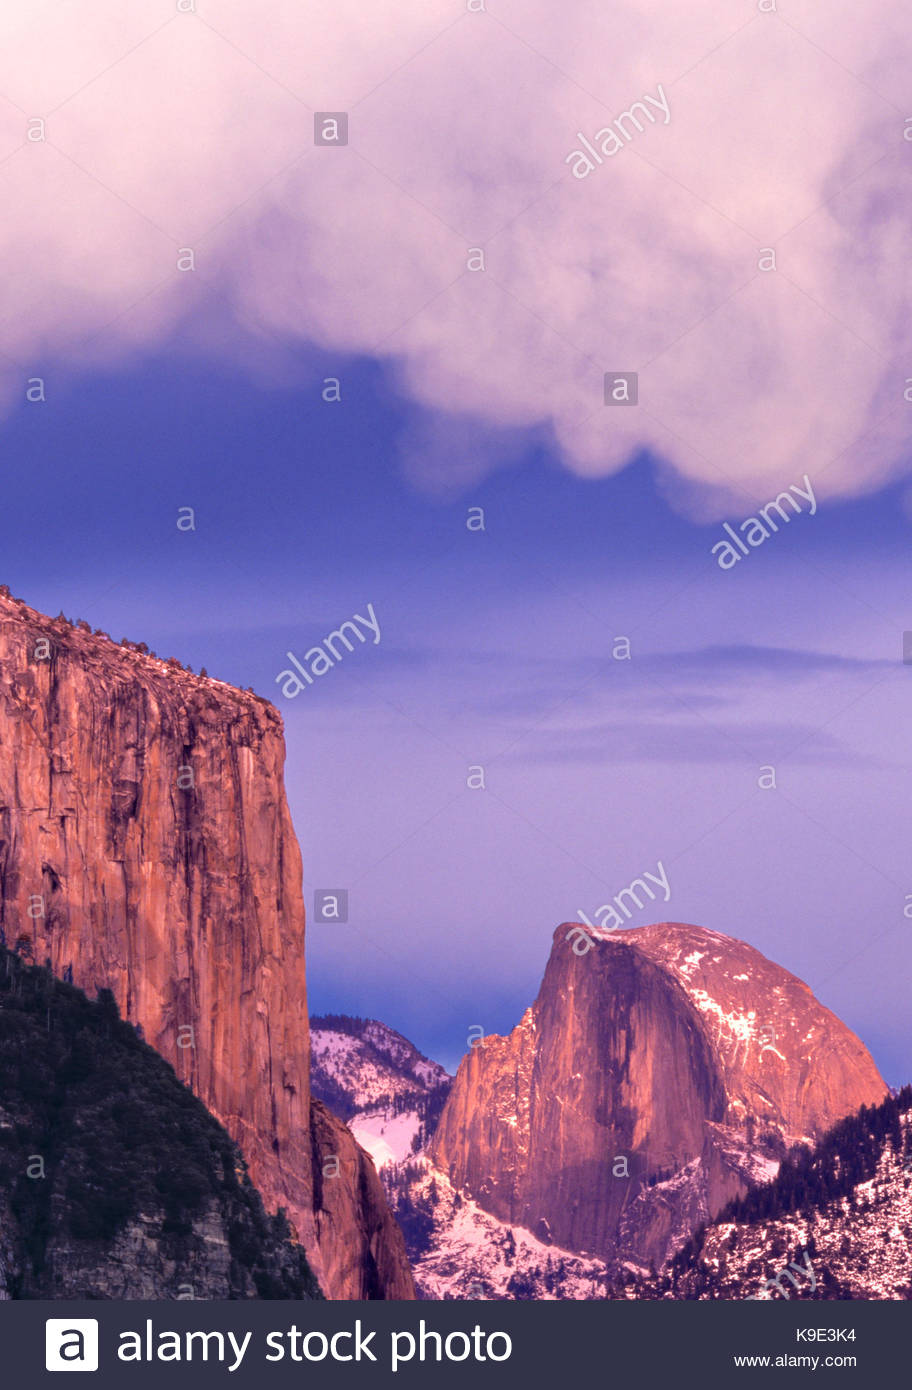 El Capitan, Half Dome et la formation de nuages Mammatus,Yosemite National Park, Californie Photo Stock